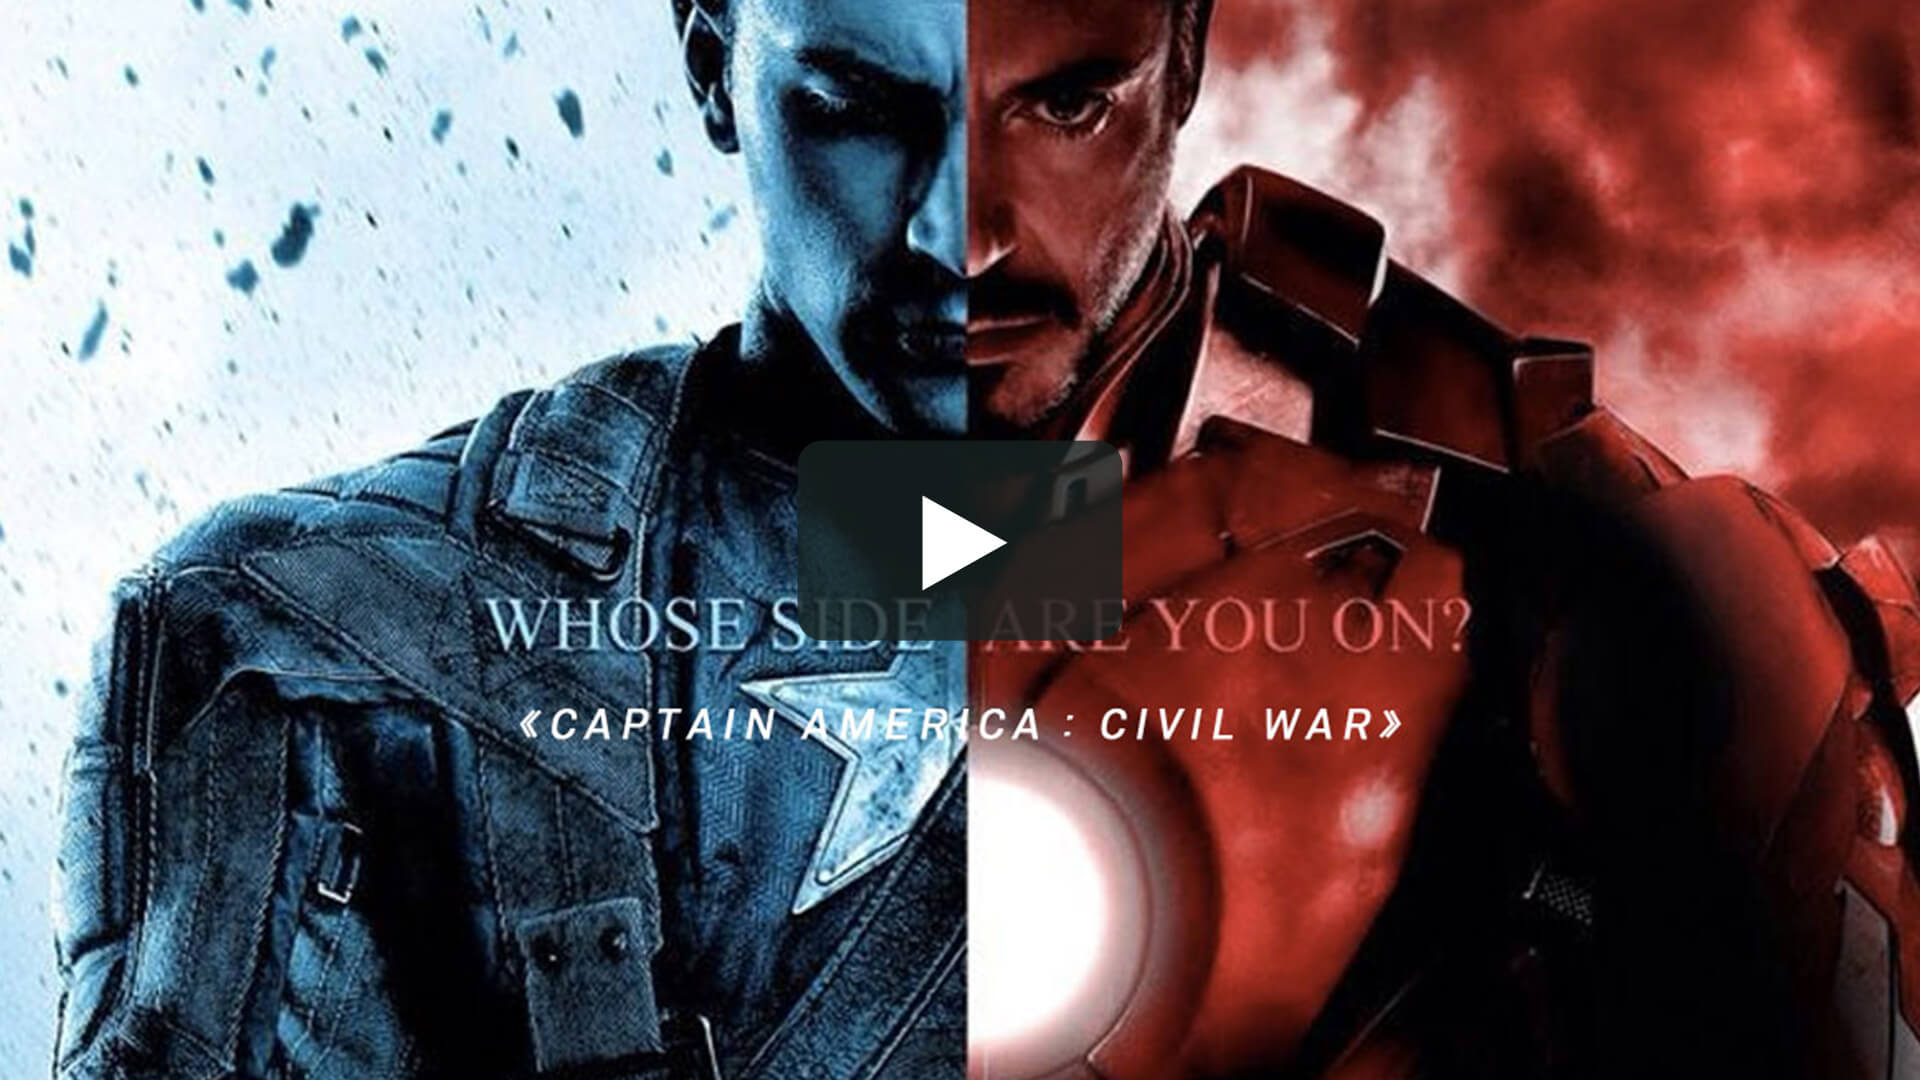 Captain America: Civil War - 美國隊長3:英雄內戰